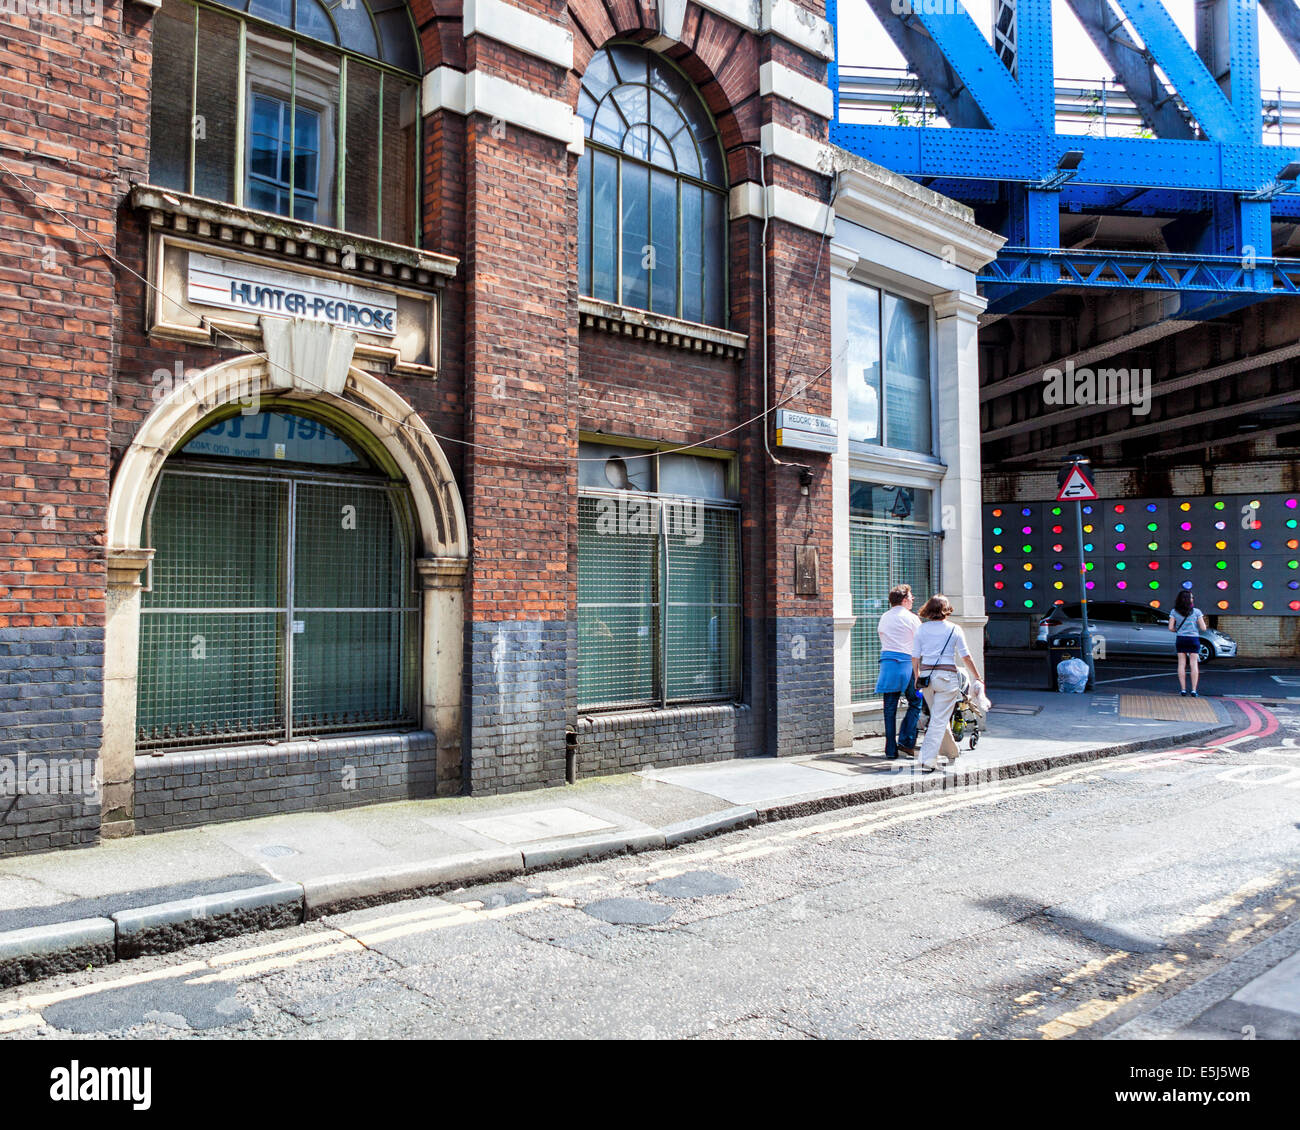 Old factory - Hunter-Penrose printing consumables and equipment business in Southwark, London, UK - Stock Image